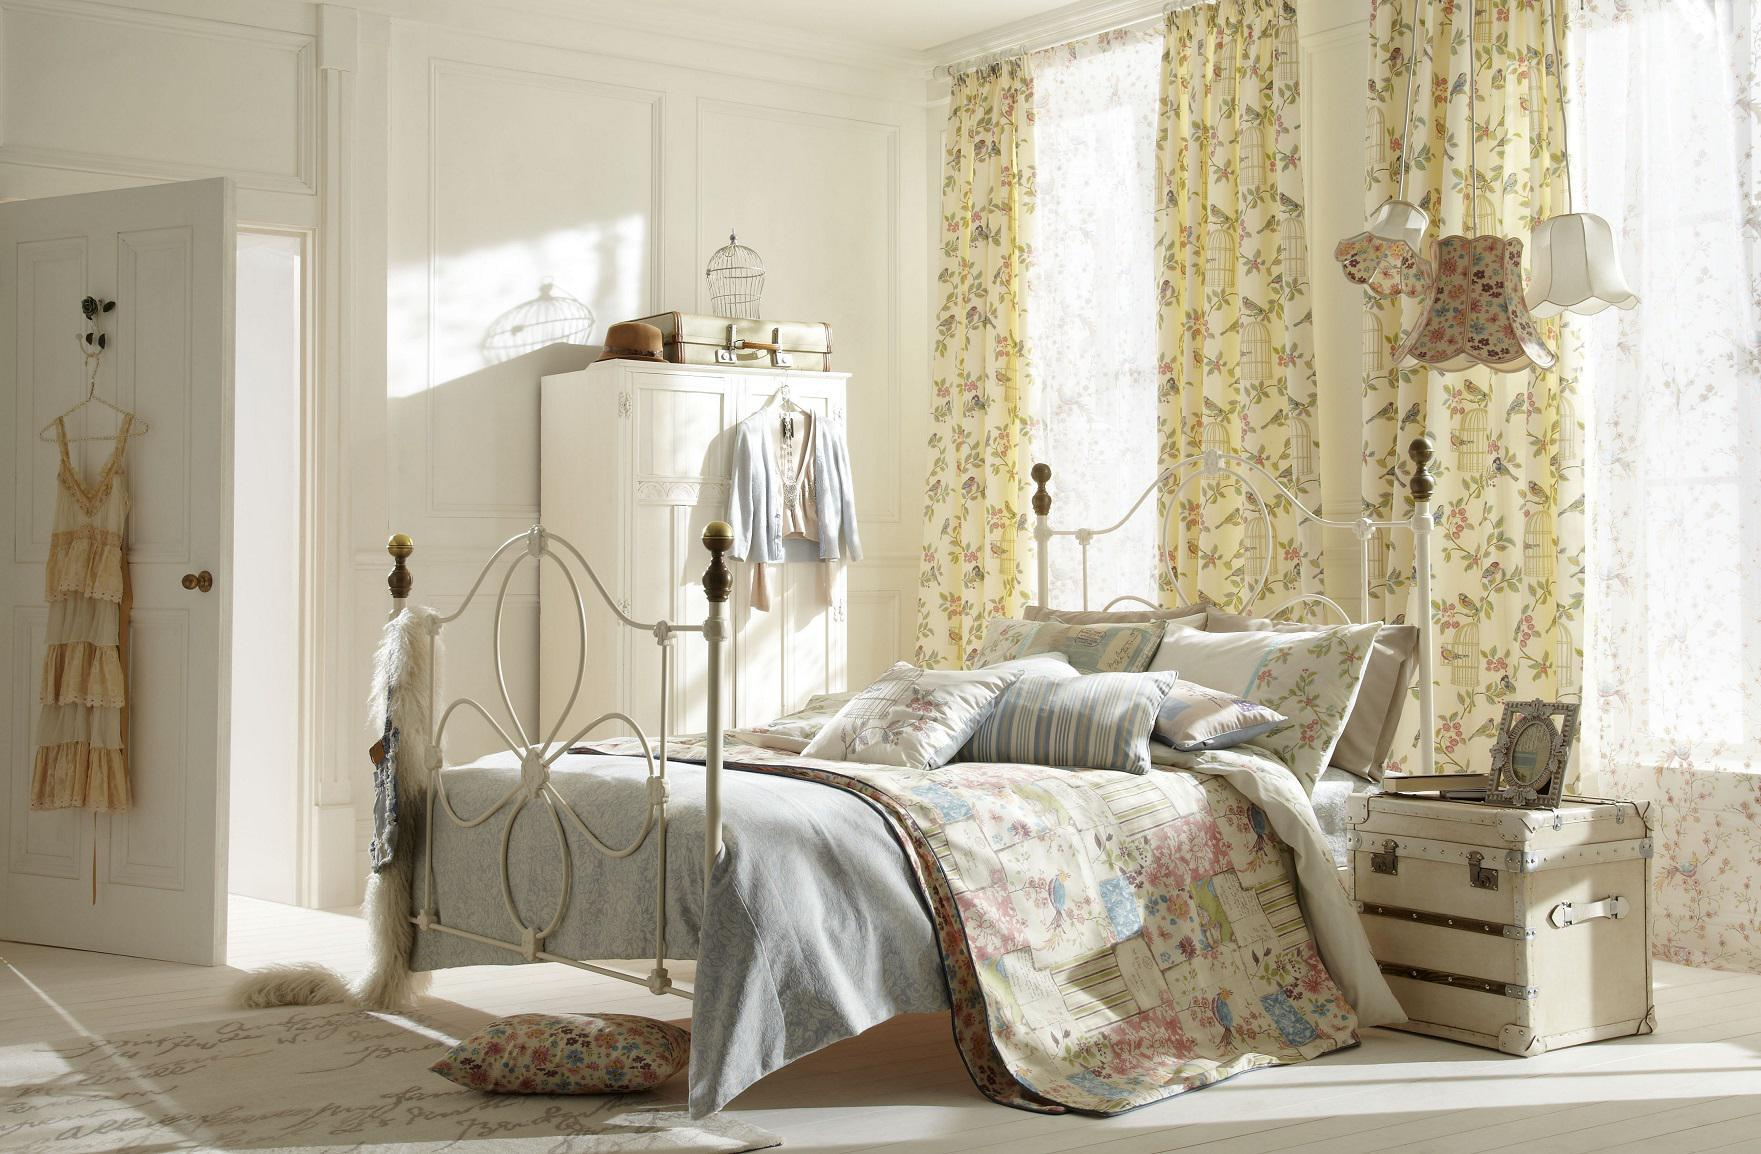 Image of: Shabby Chic Bedroom Ideas Colorful